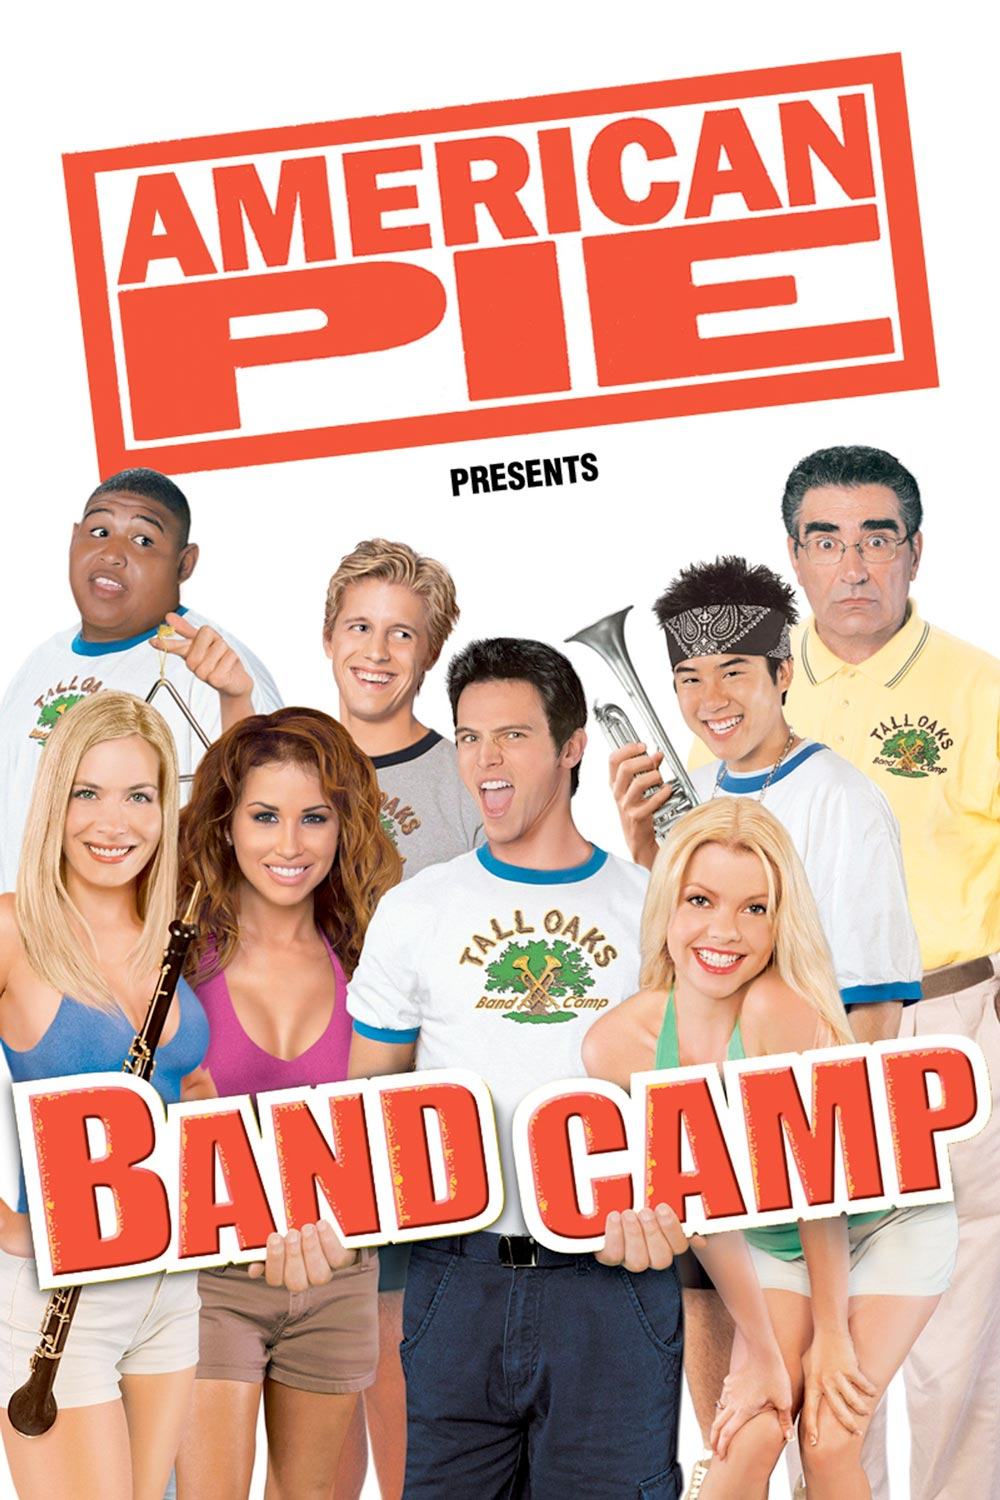 American Beta House Movie american pie presents: band camp movie review - mikeymo